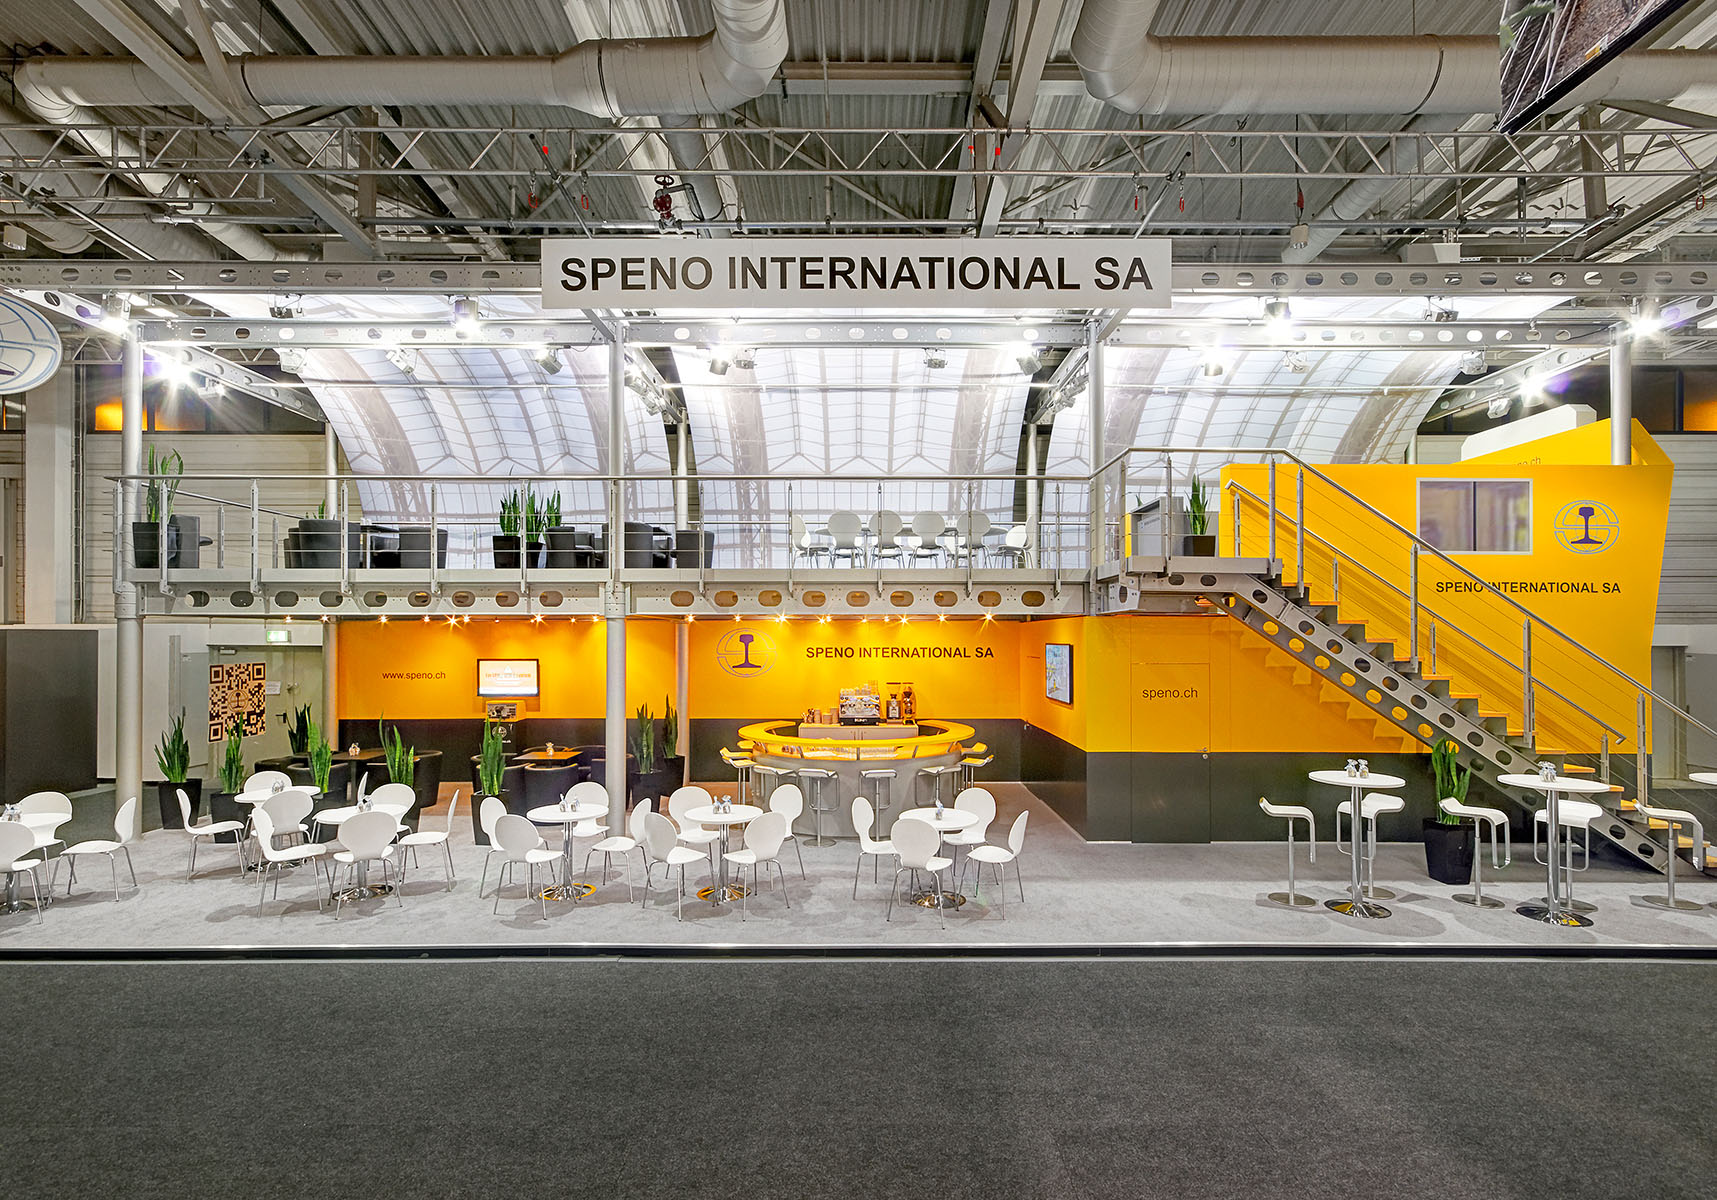 Speno international Messestand in Berlin von Blickfang Messebau - Frontalansicht